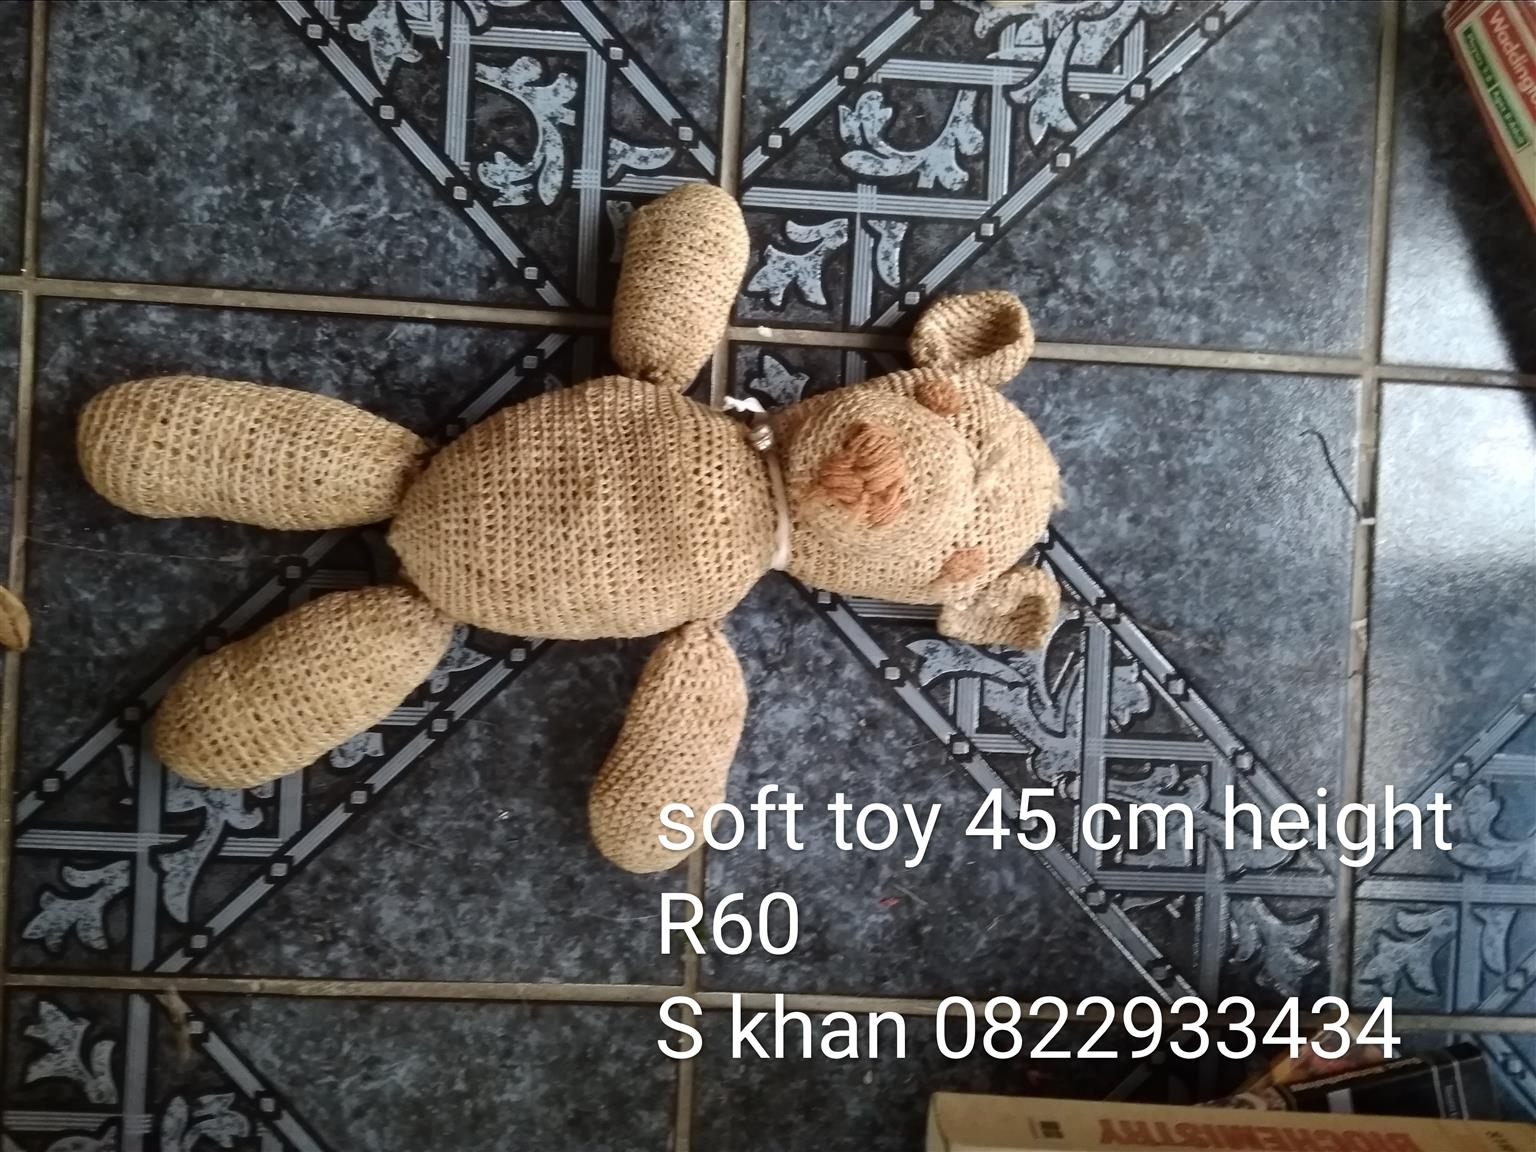 DOLL AND TEDDY FOR SALE